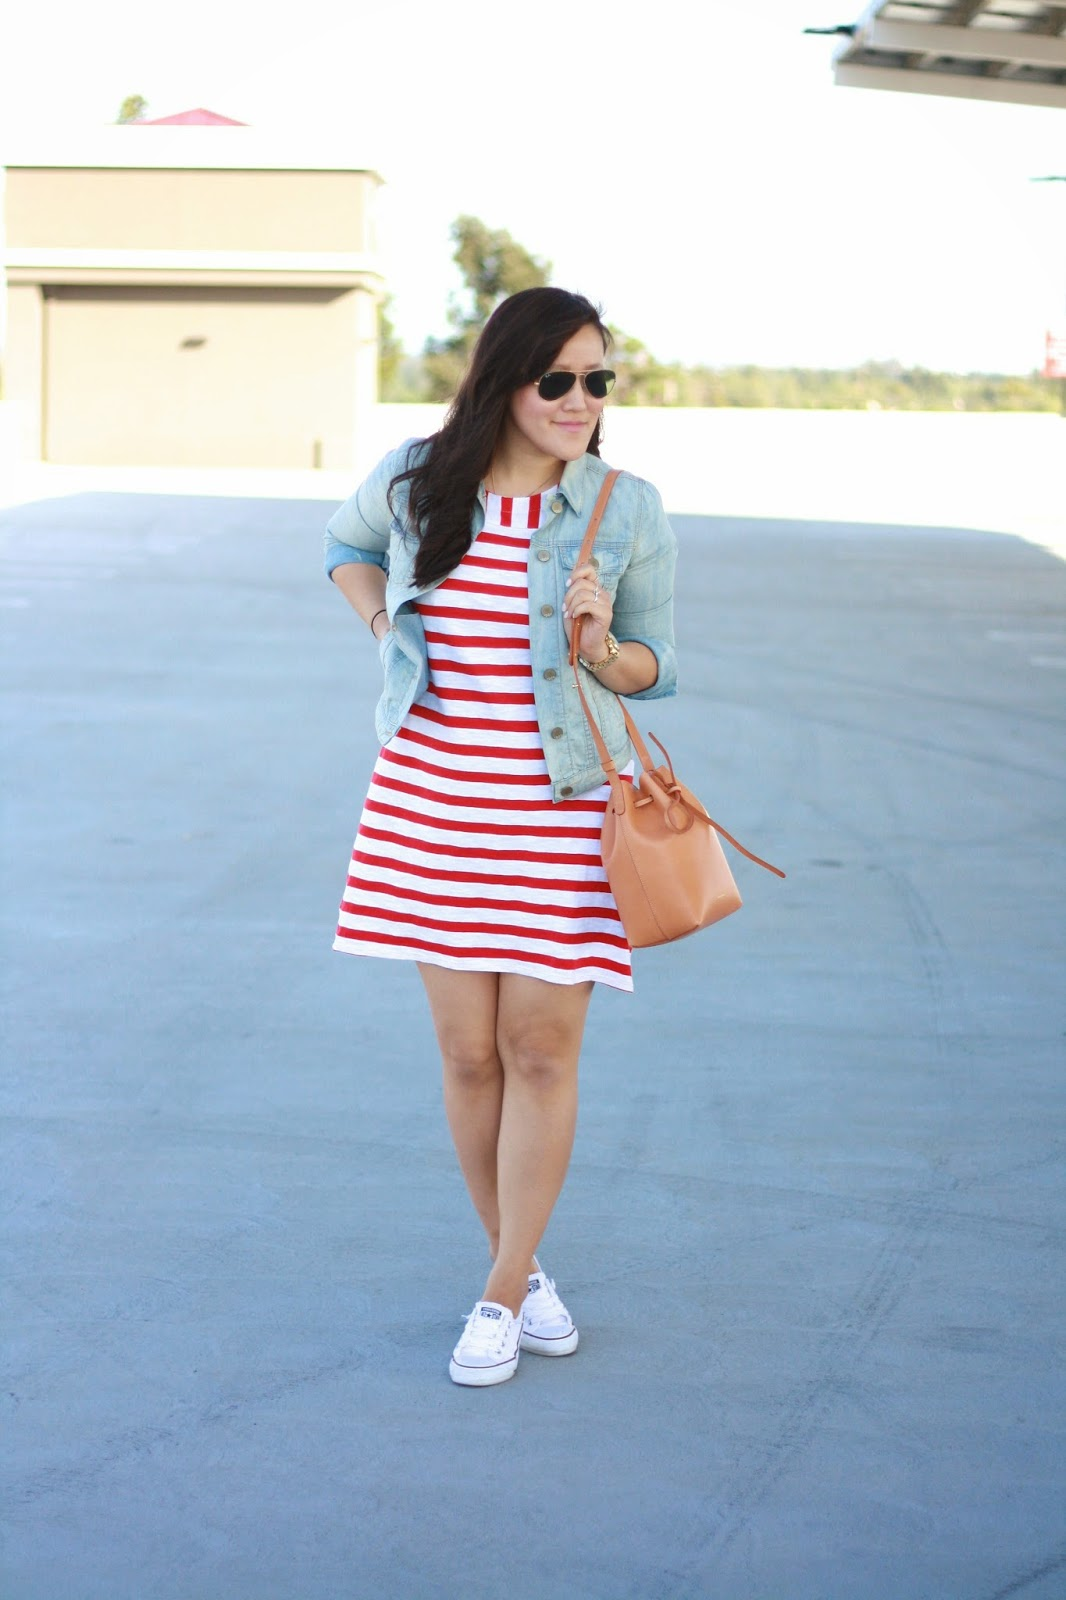 simplyxclassic, old navy style, striped dress, gap denim, chucks, outfit, ootd, orange county blogger, fashion, mansur gavriel, bucket bag, all american girl, stripes,